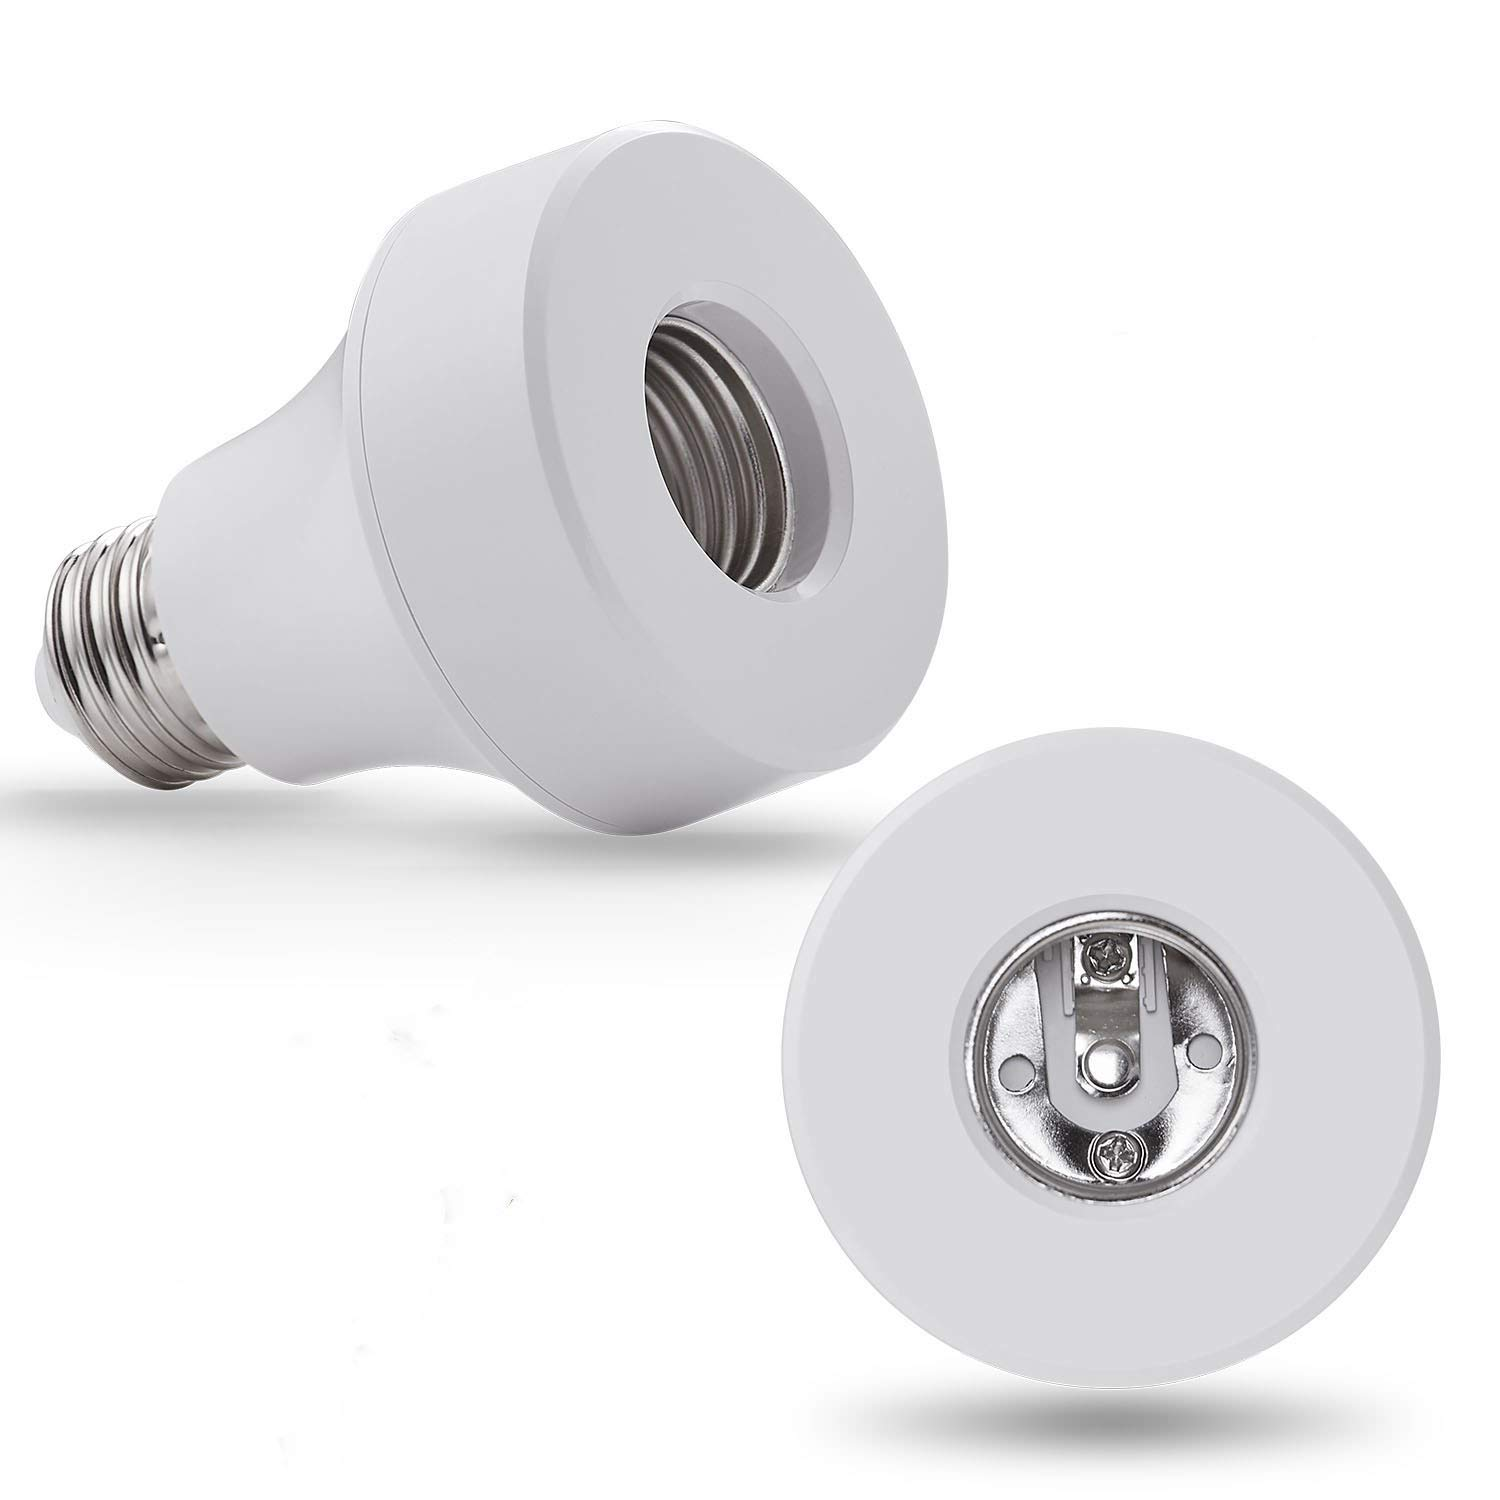 WiFi Smart Light Bulb Socket Bulb Adapter Base Converter E26 Lamp Holde Plug Works with Alexa and Google Home Assistant Phone APP Remote Control Your Fixtures From Anywhere Timing Function